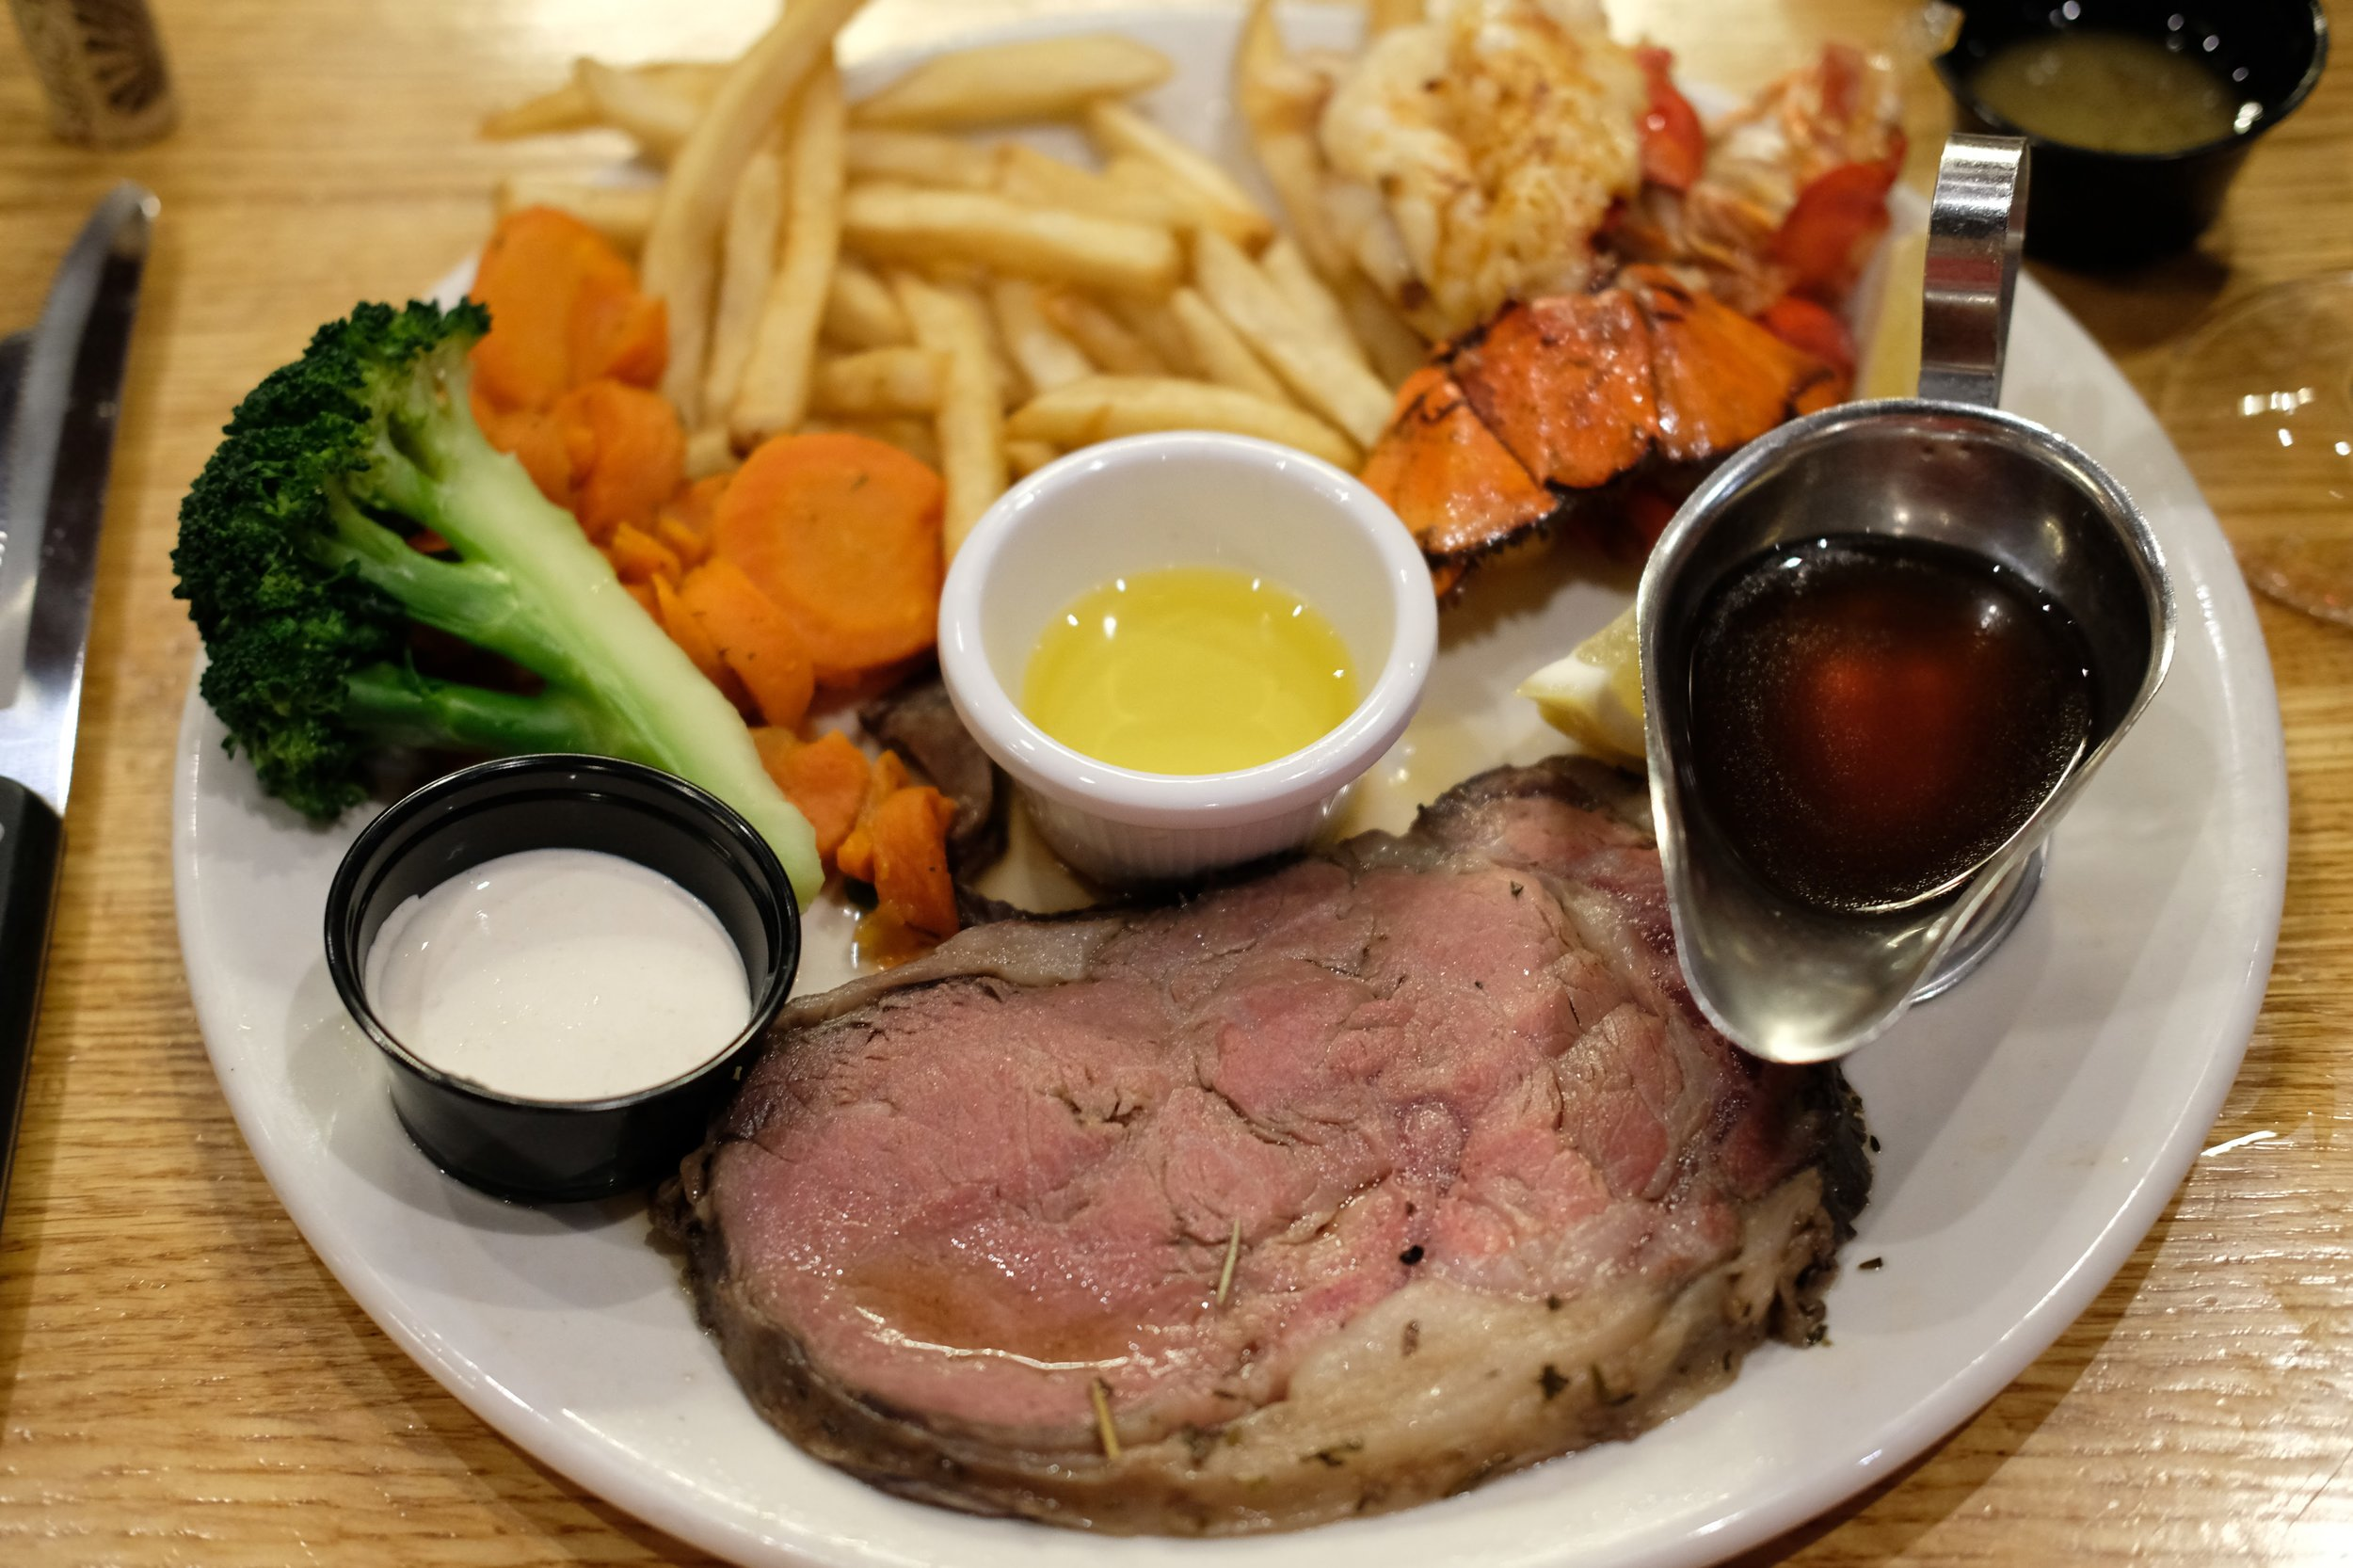 Prime rib & lobster $20 meal (also came with a salad or soup)